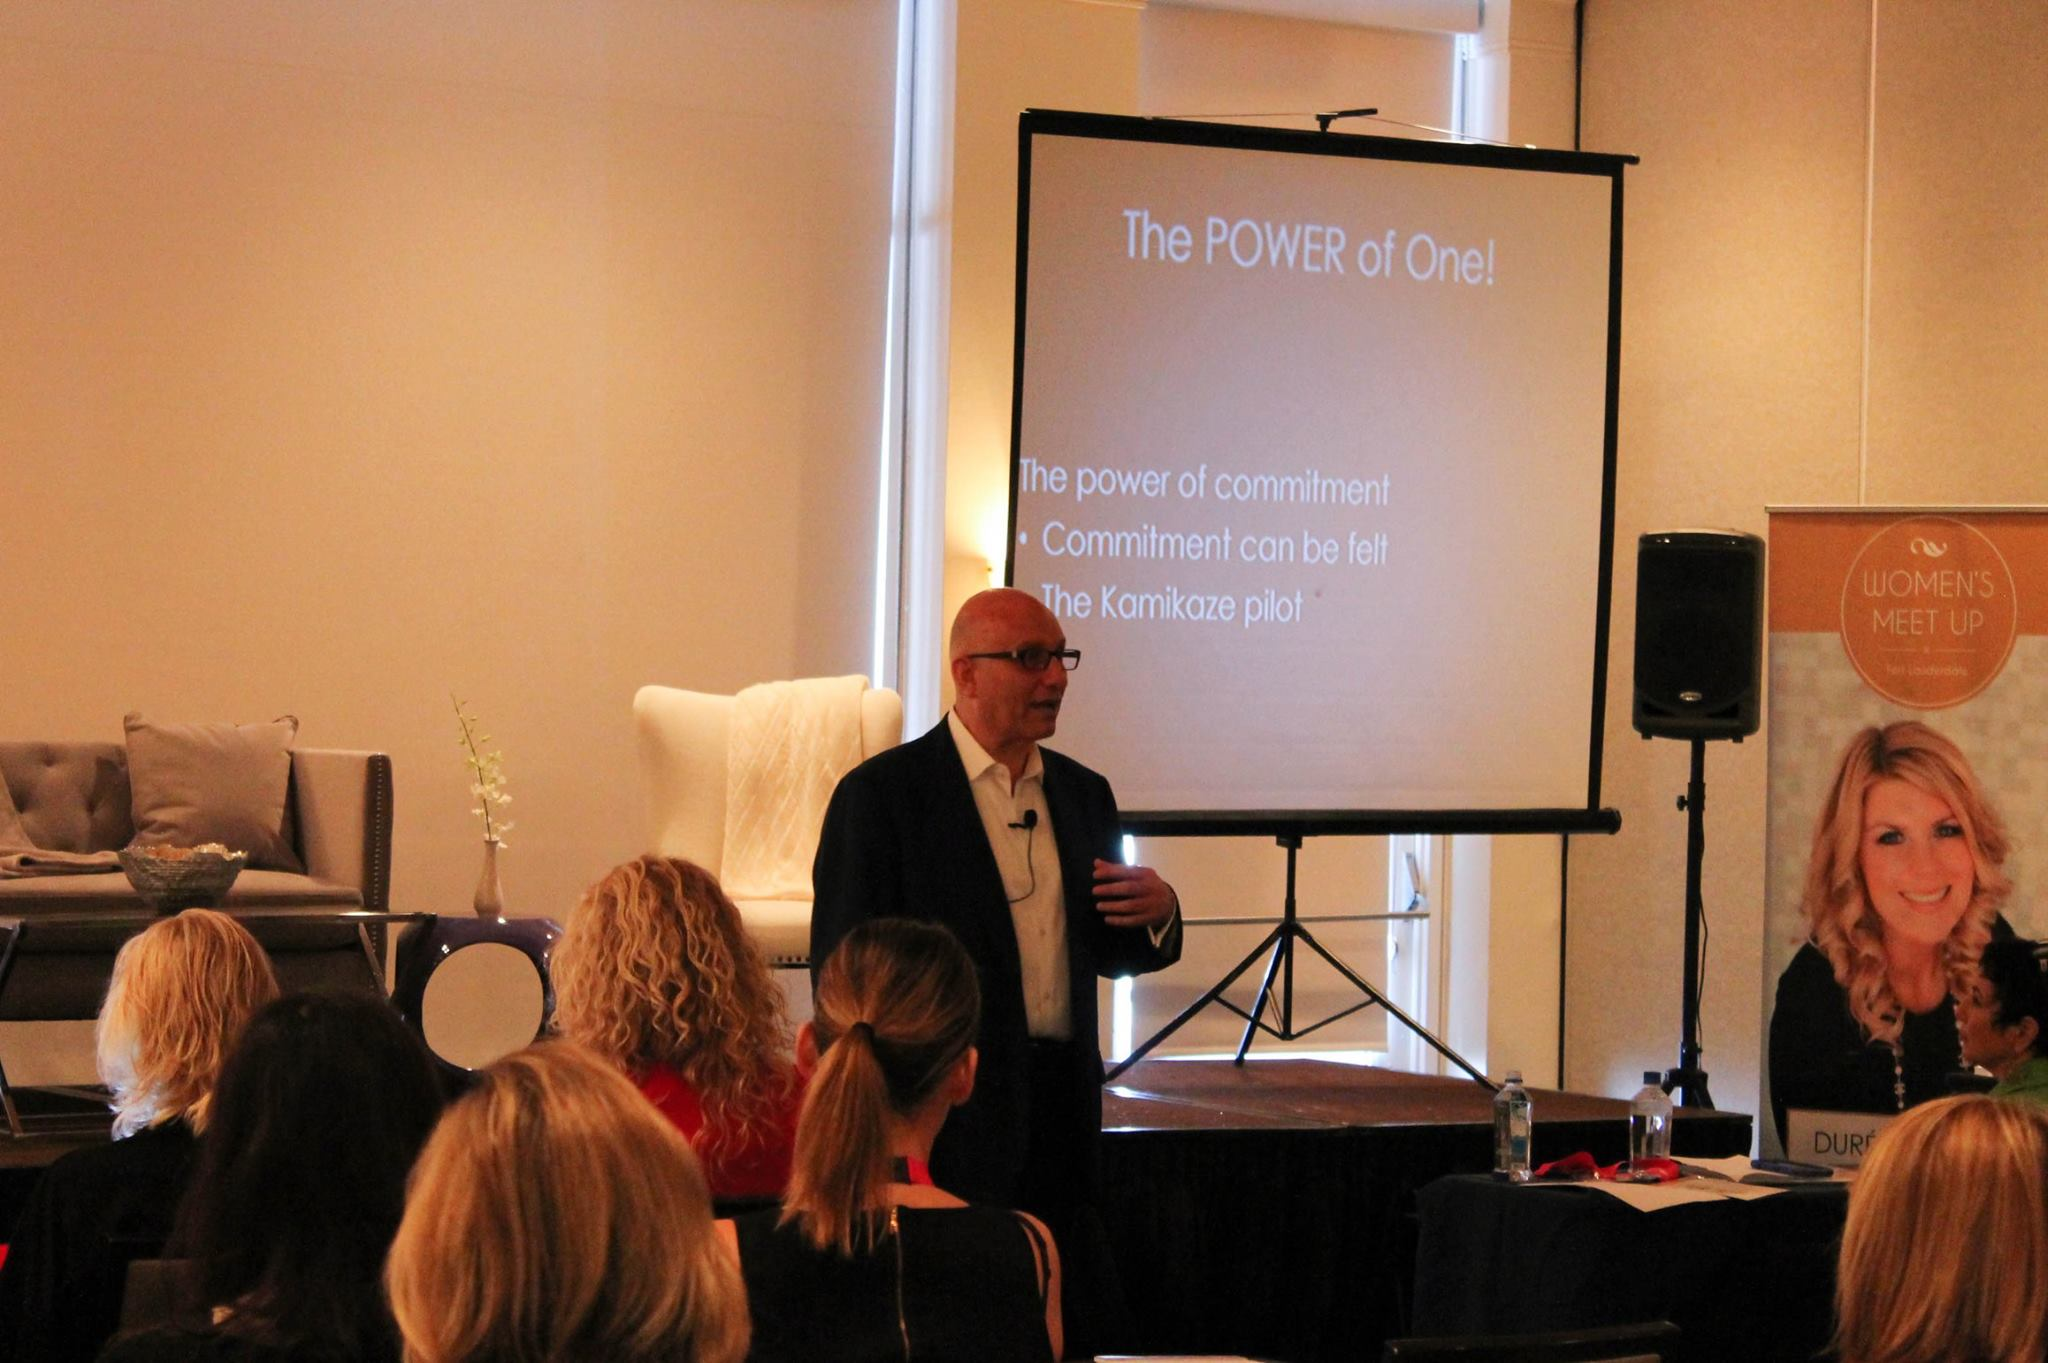 Roy Assad during his keynote address, image courtesy of 32Events